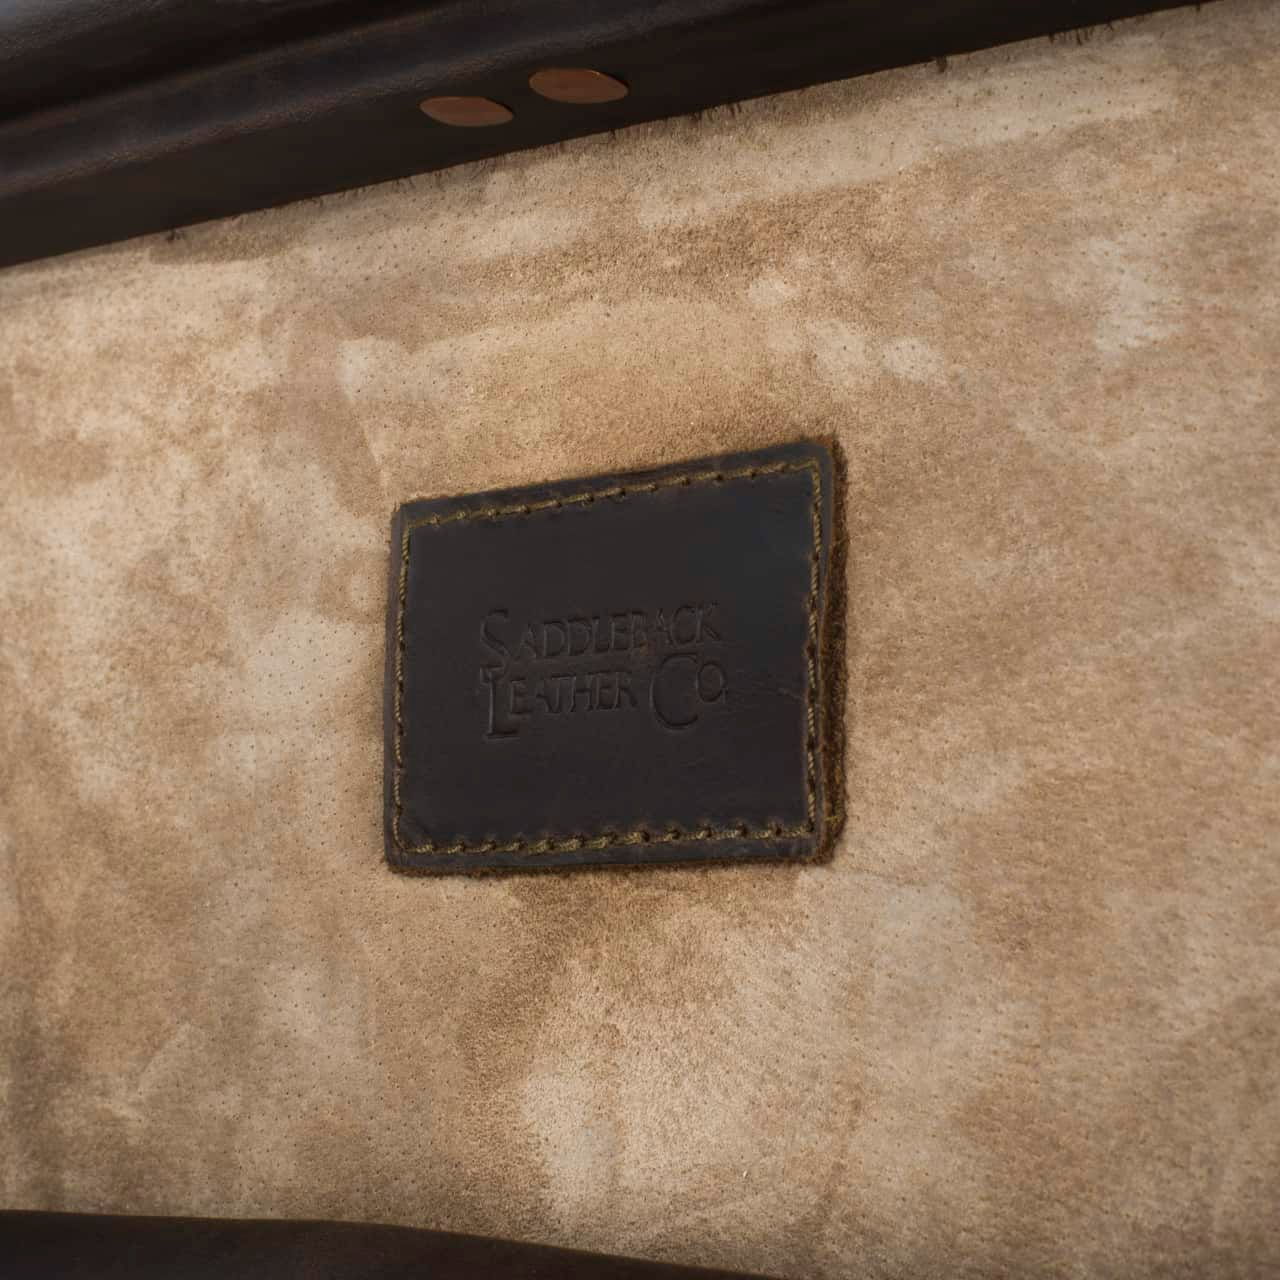 Leather Trunk in color Dark Coffee Brown Zoomed in onthe Saddleback Brand on the Interior of the Lid